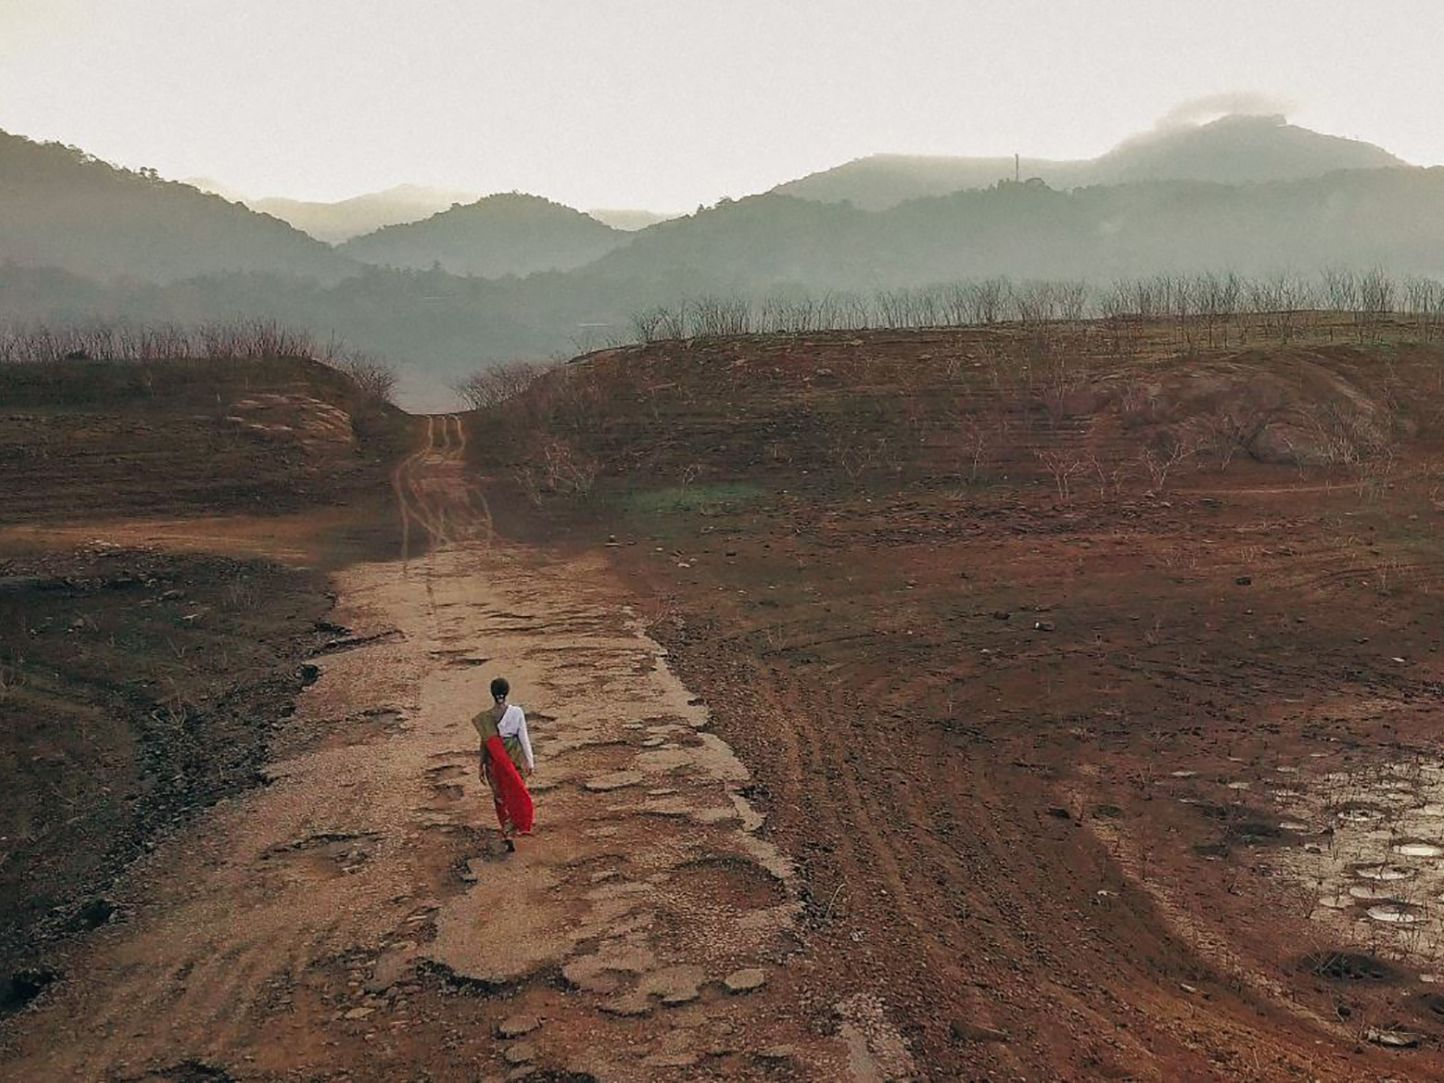 Indian woman wearing colourful clothes walking through derelict land